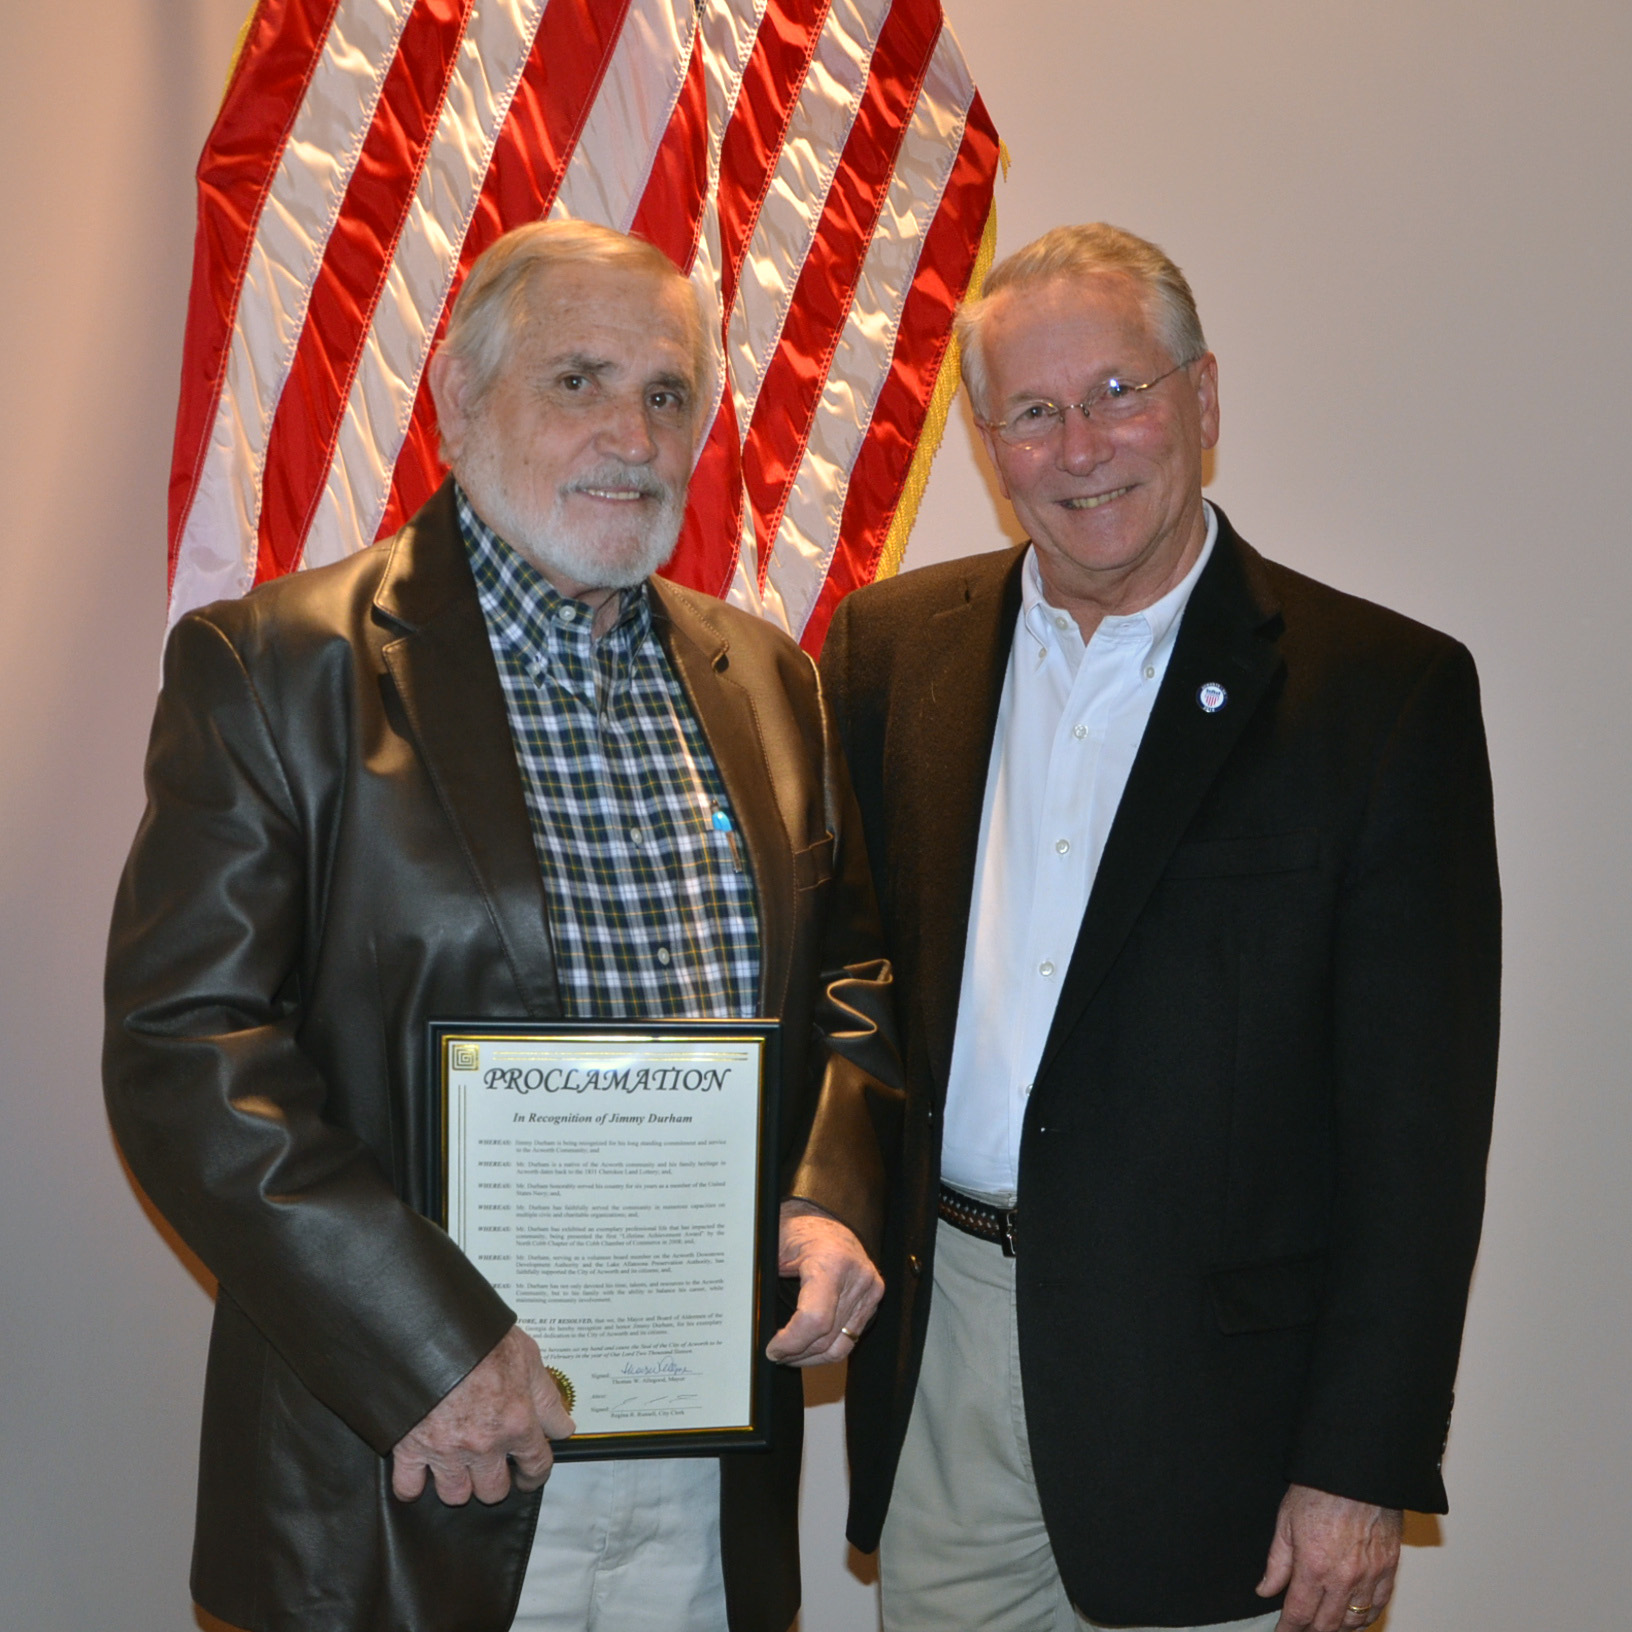 Jimmy Durham's Years of Service with DDA 4